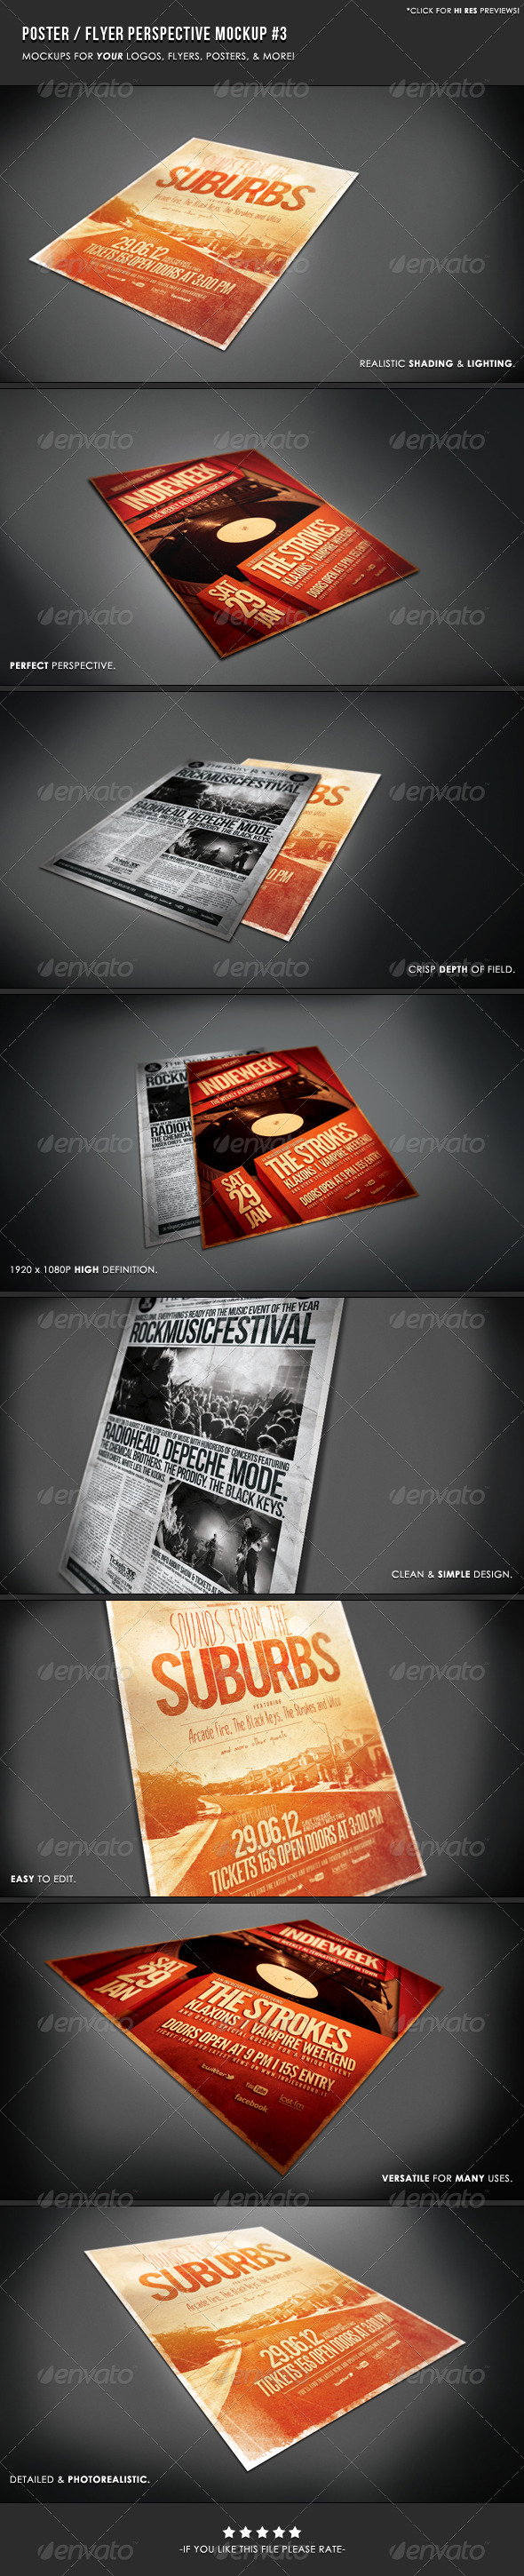 Poster & Flyer Perspective Mockup #3